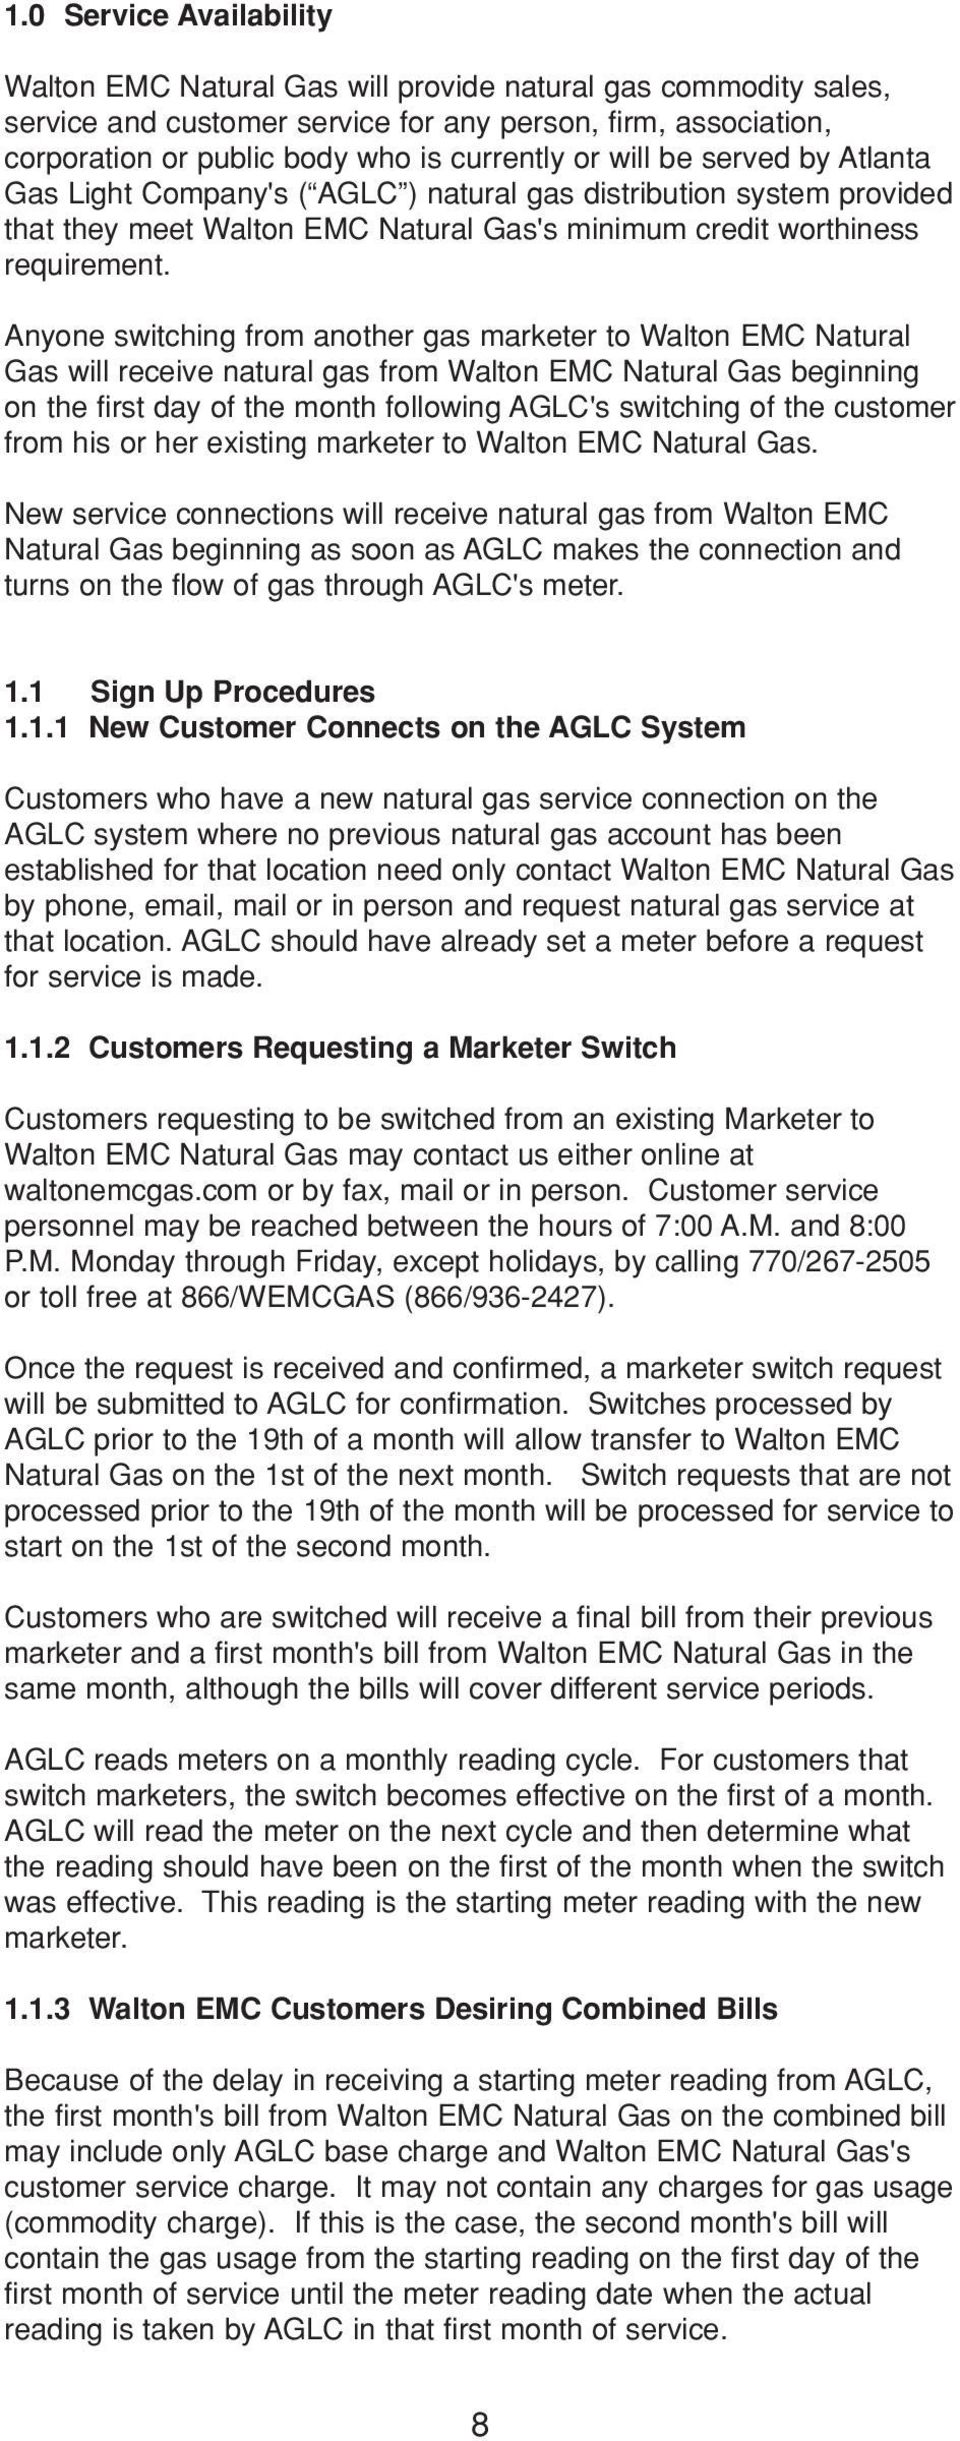 Anyone switching from another gas marketer to Walton EMC Natural Gas will receive natural gas from Walton EMC Natural Gas beginning on the first day of the month following AGLC's switching of the